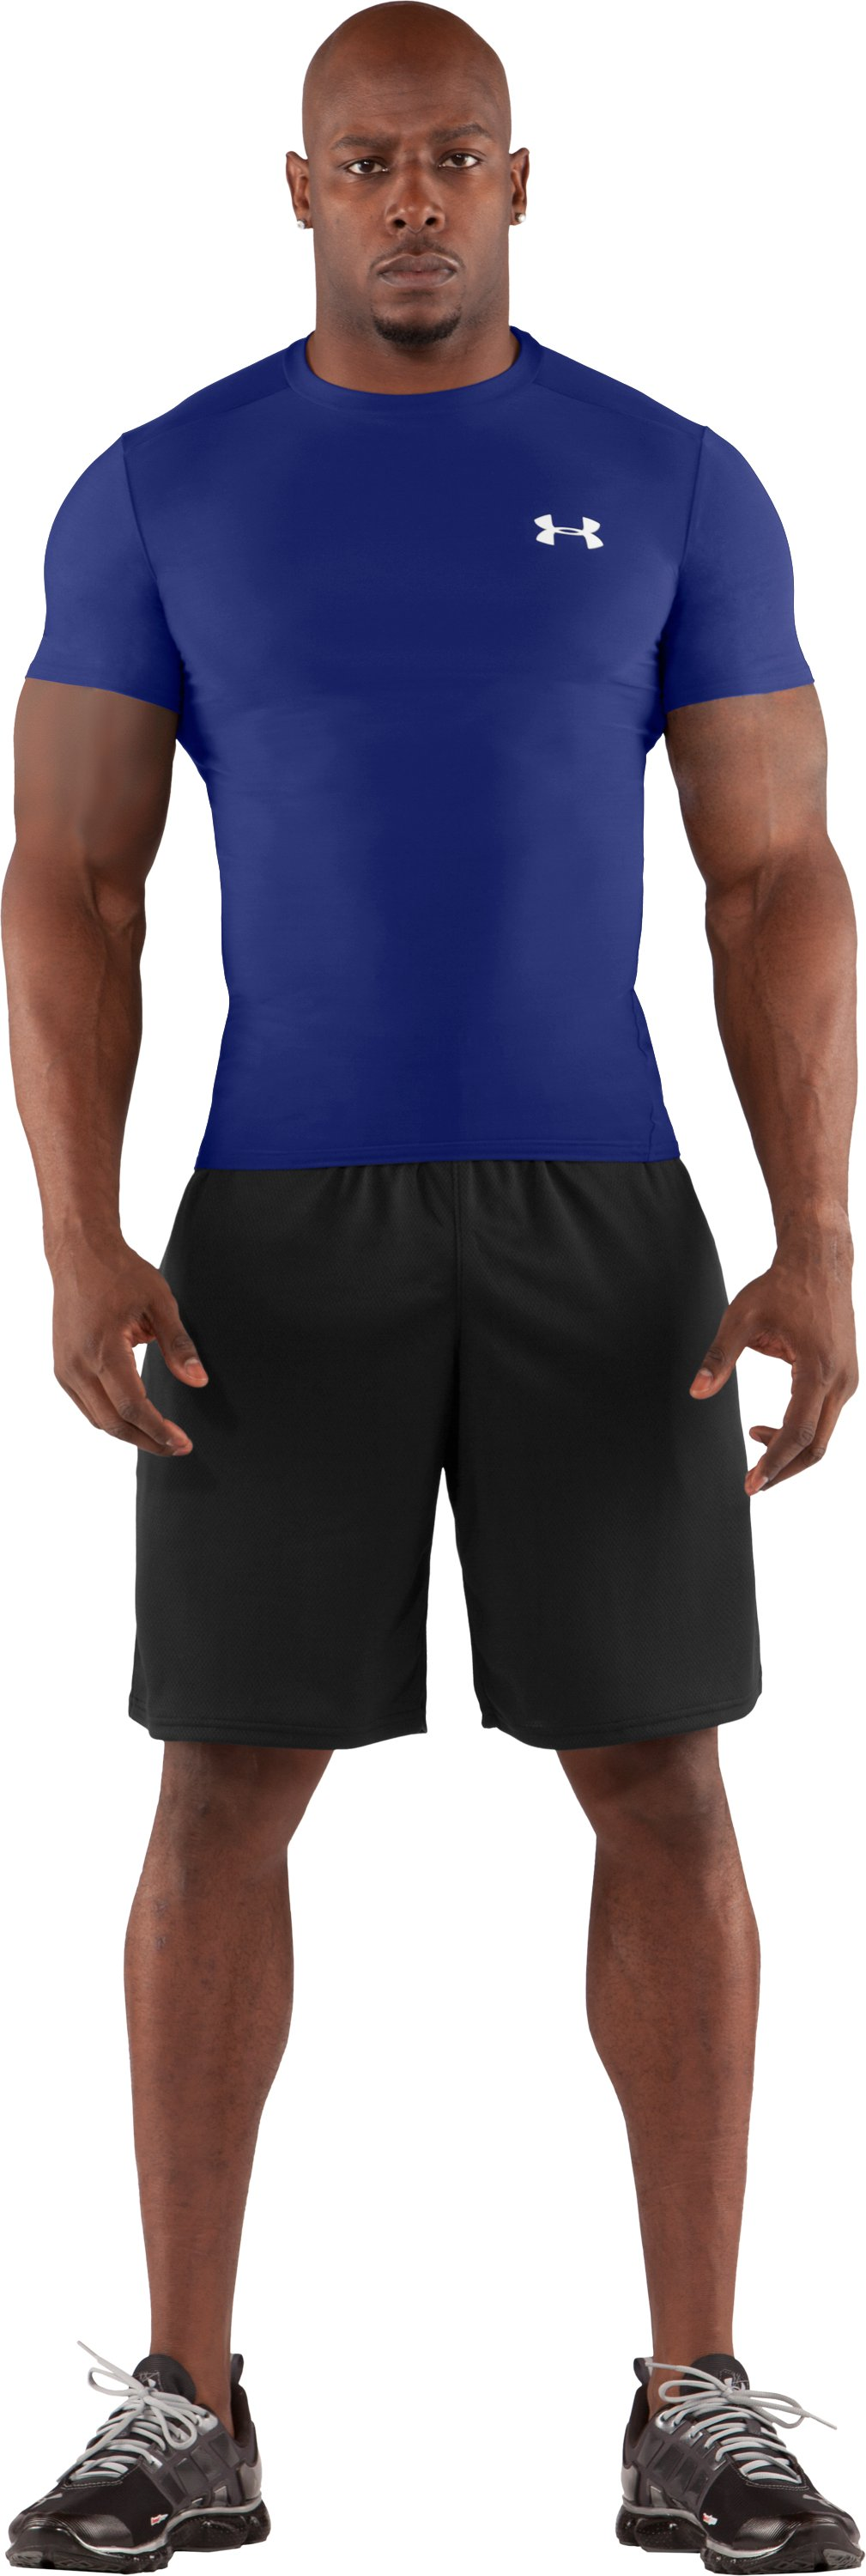 Men's HeatGear® Compression Short Sleeve T-Shirt, Royal, Front